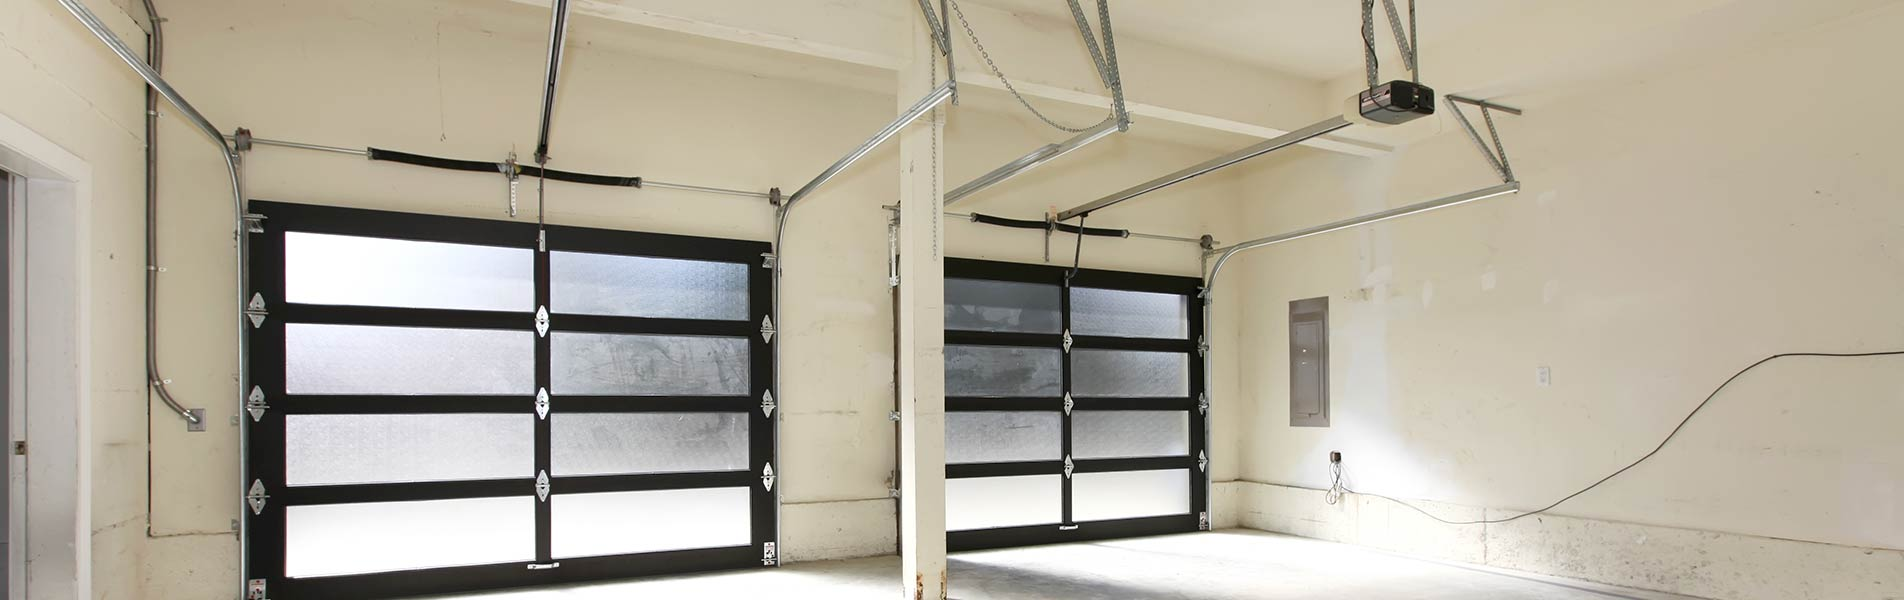 Eagle Garage Door Service North Miami, FL 786-353-1358